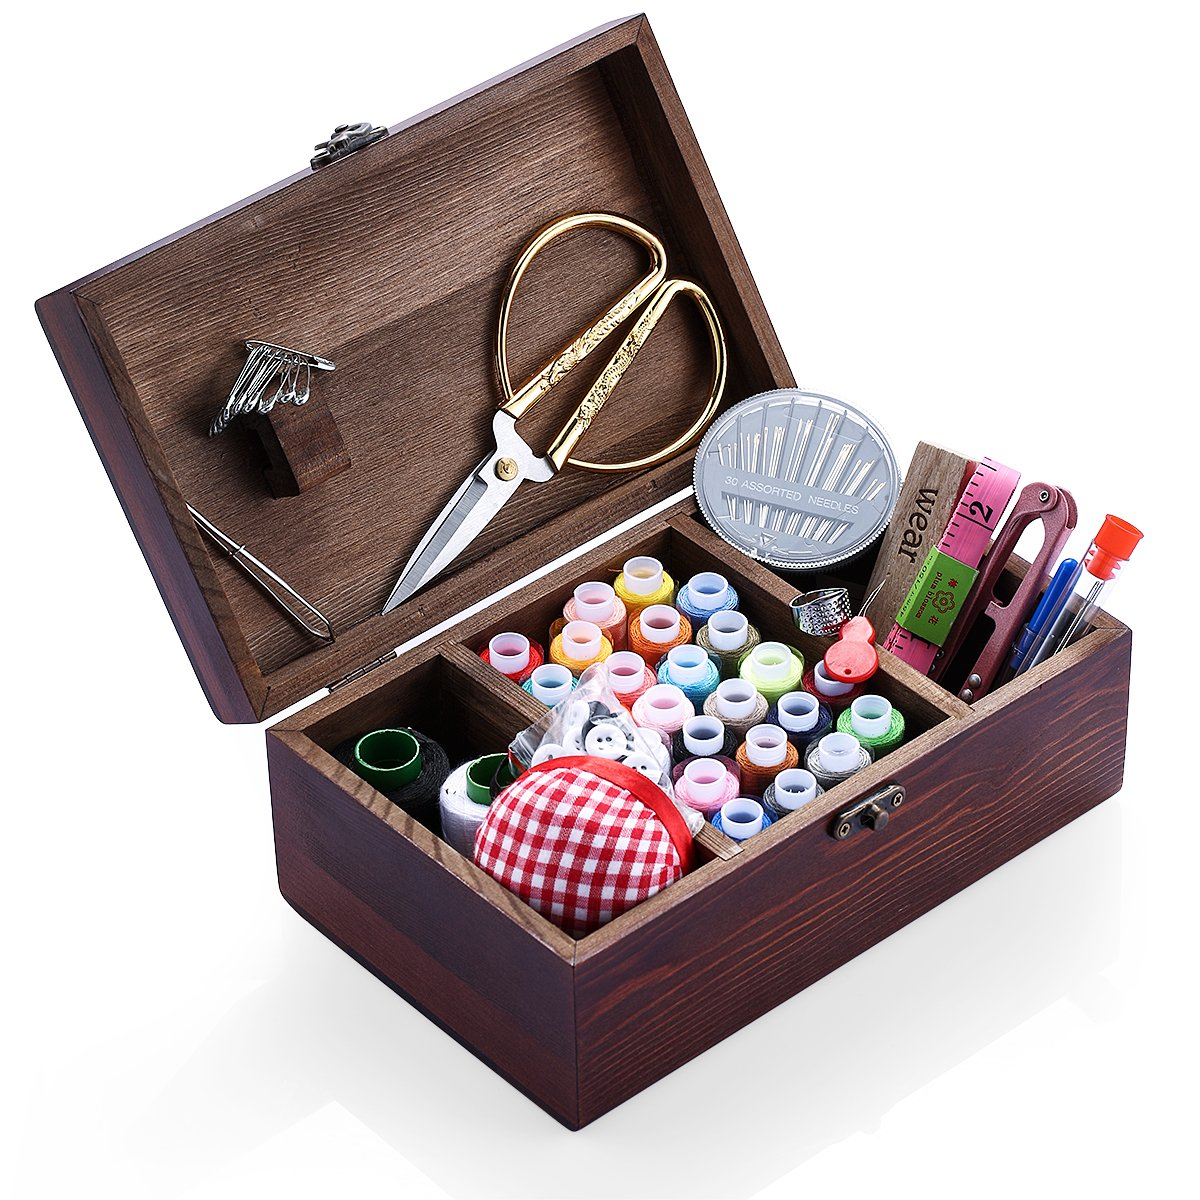 Wooden Sewing Kits Sewing Boxes and Baskets with Sewing Accessories Kit, Good for Adults/Kids/Girls Kungfuking 4336938003